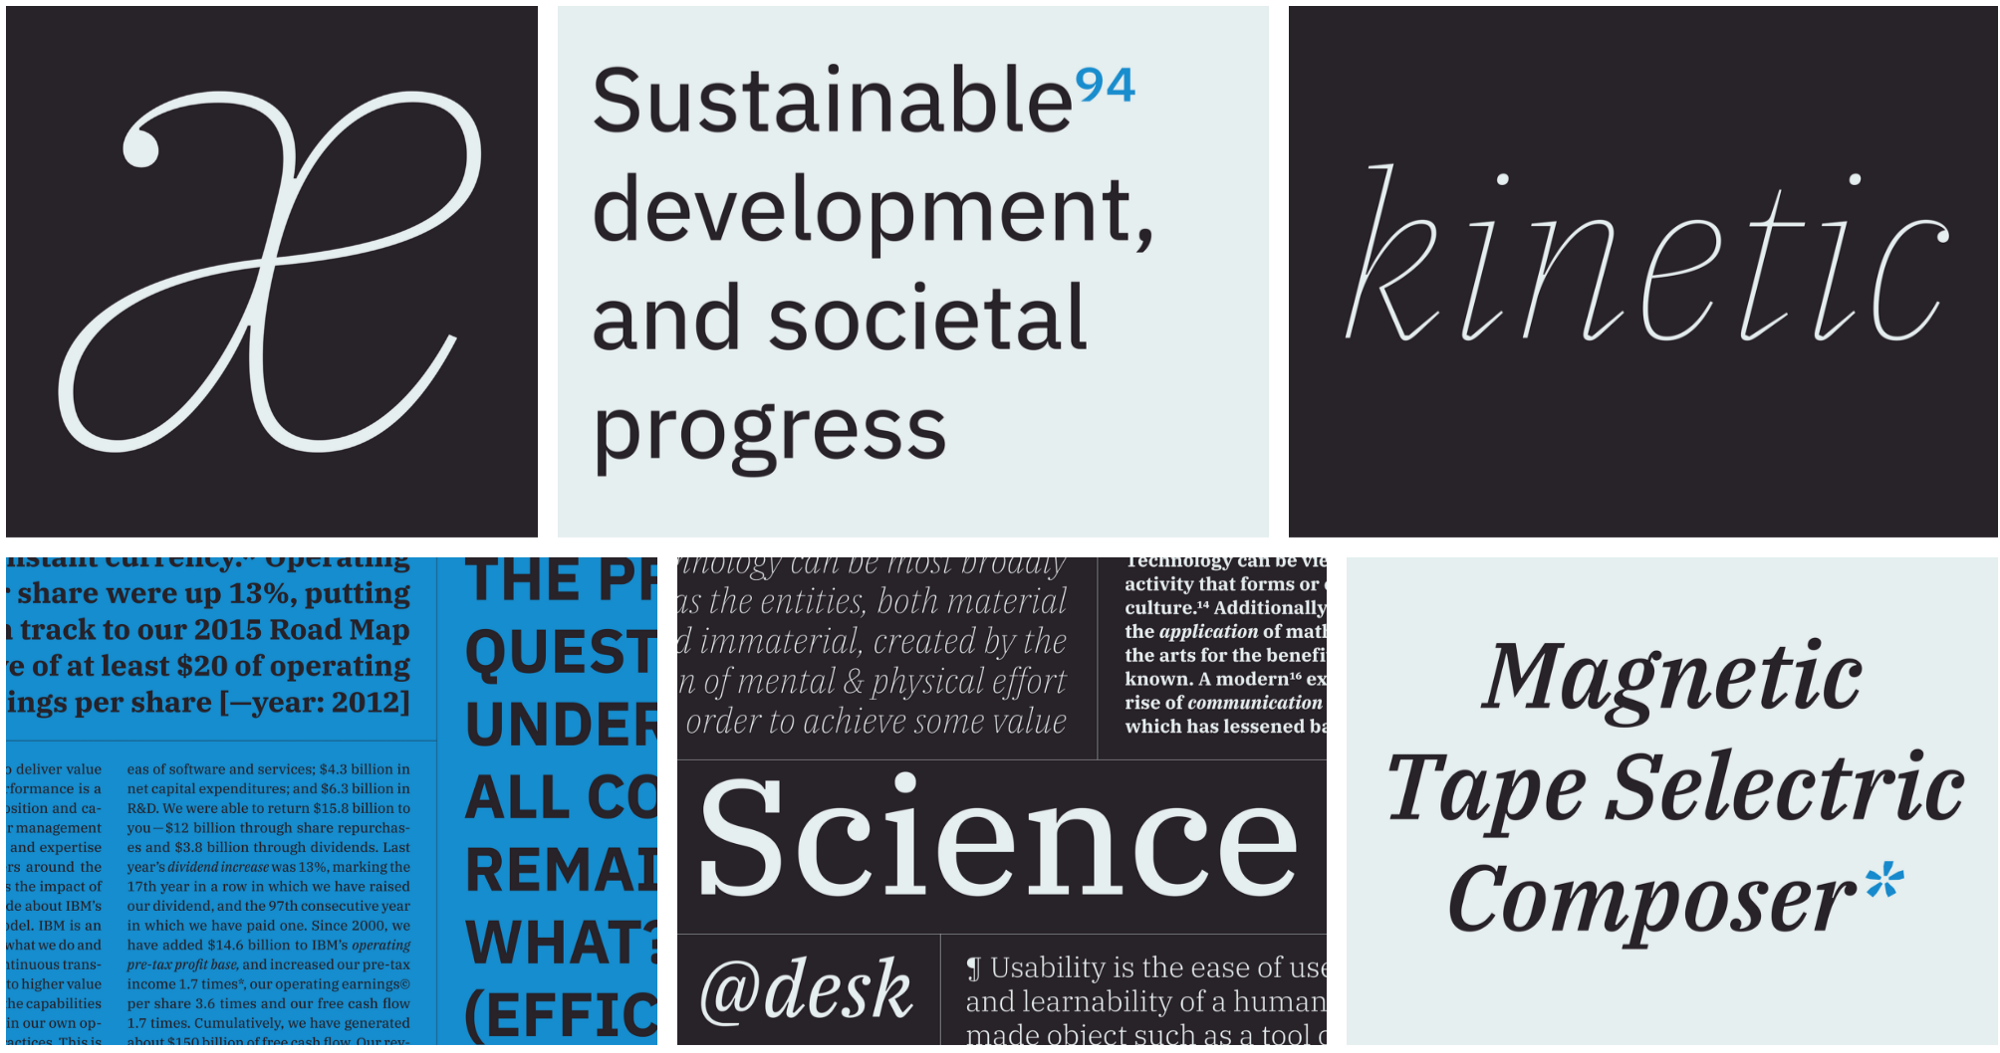 30 free and open source typefaces released recently best collections consisting of different subfamilies that are perfect to pair together these typefaces can serve a variety of needs across print and digital experiences altavistaventures Gallery